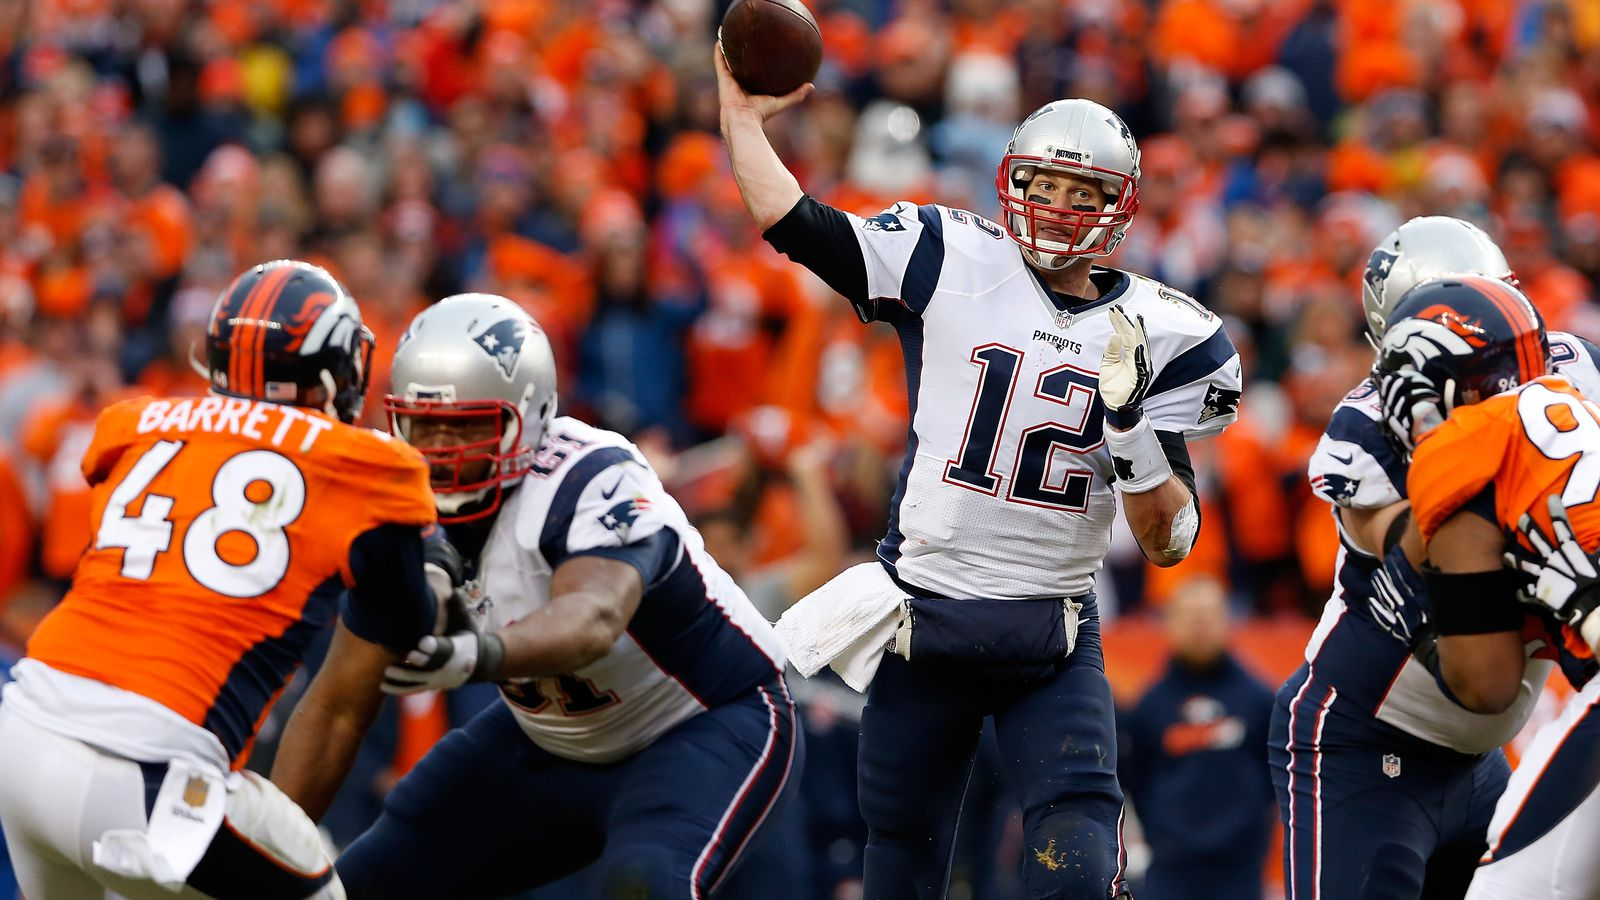 online odds patriots and broncos game score